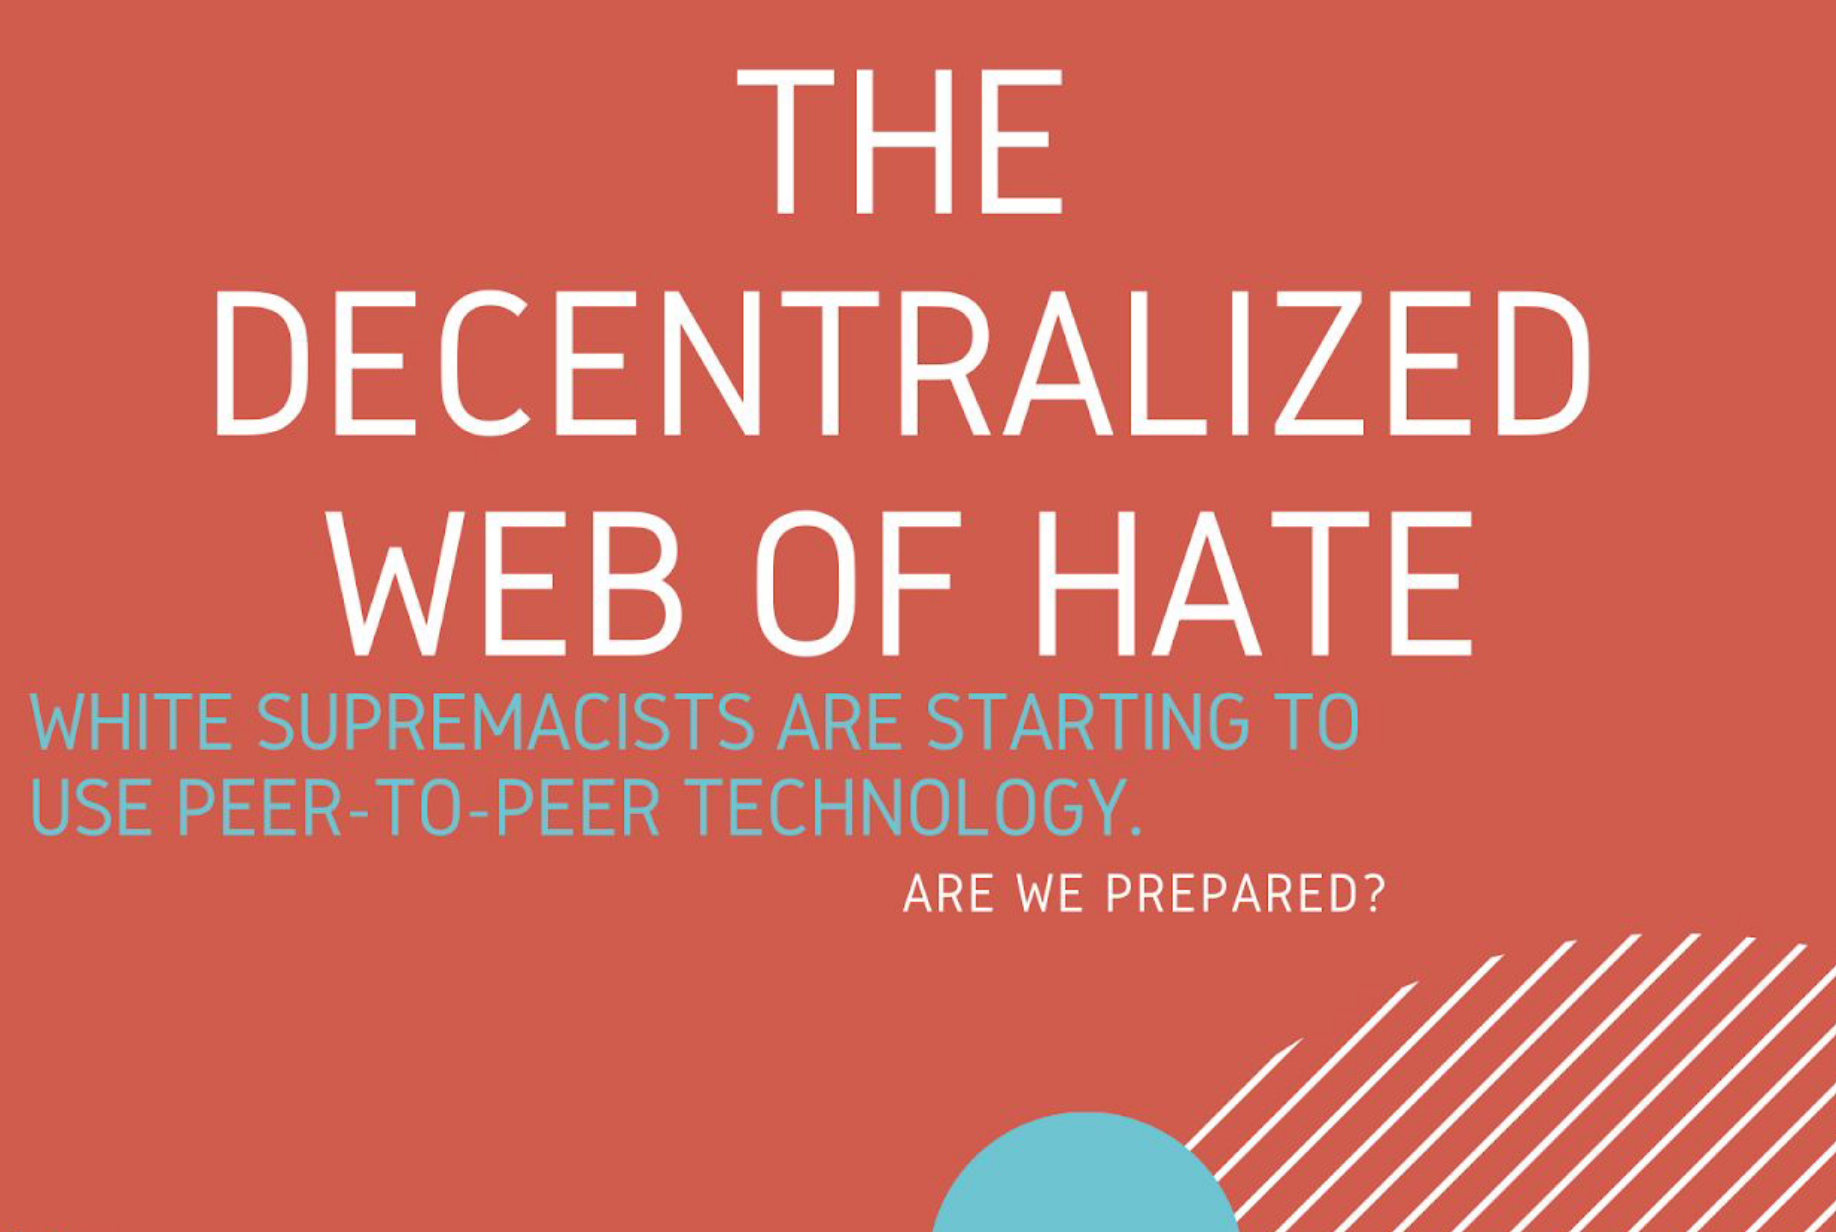 The Decentralized Web of Hate